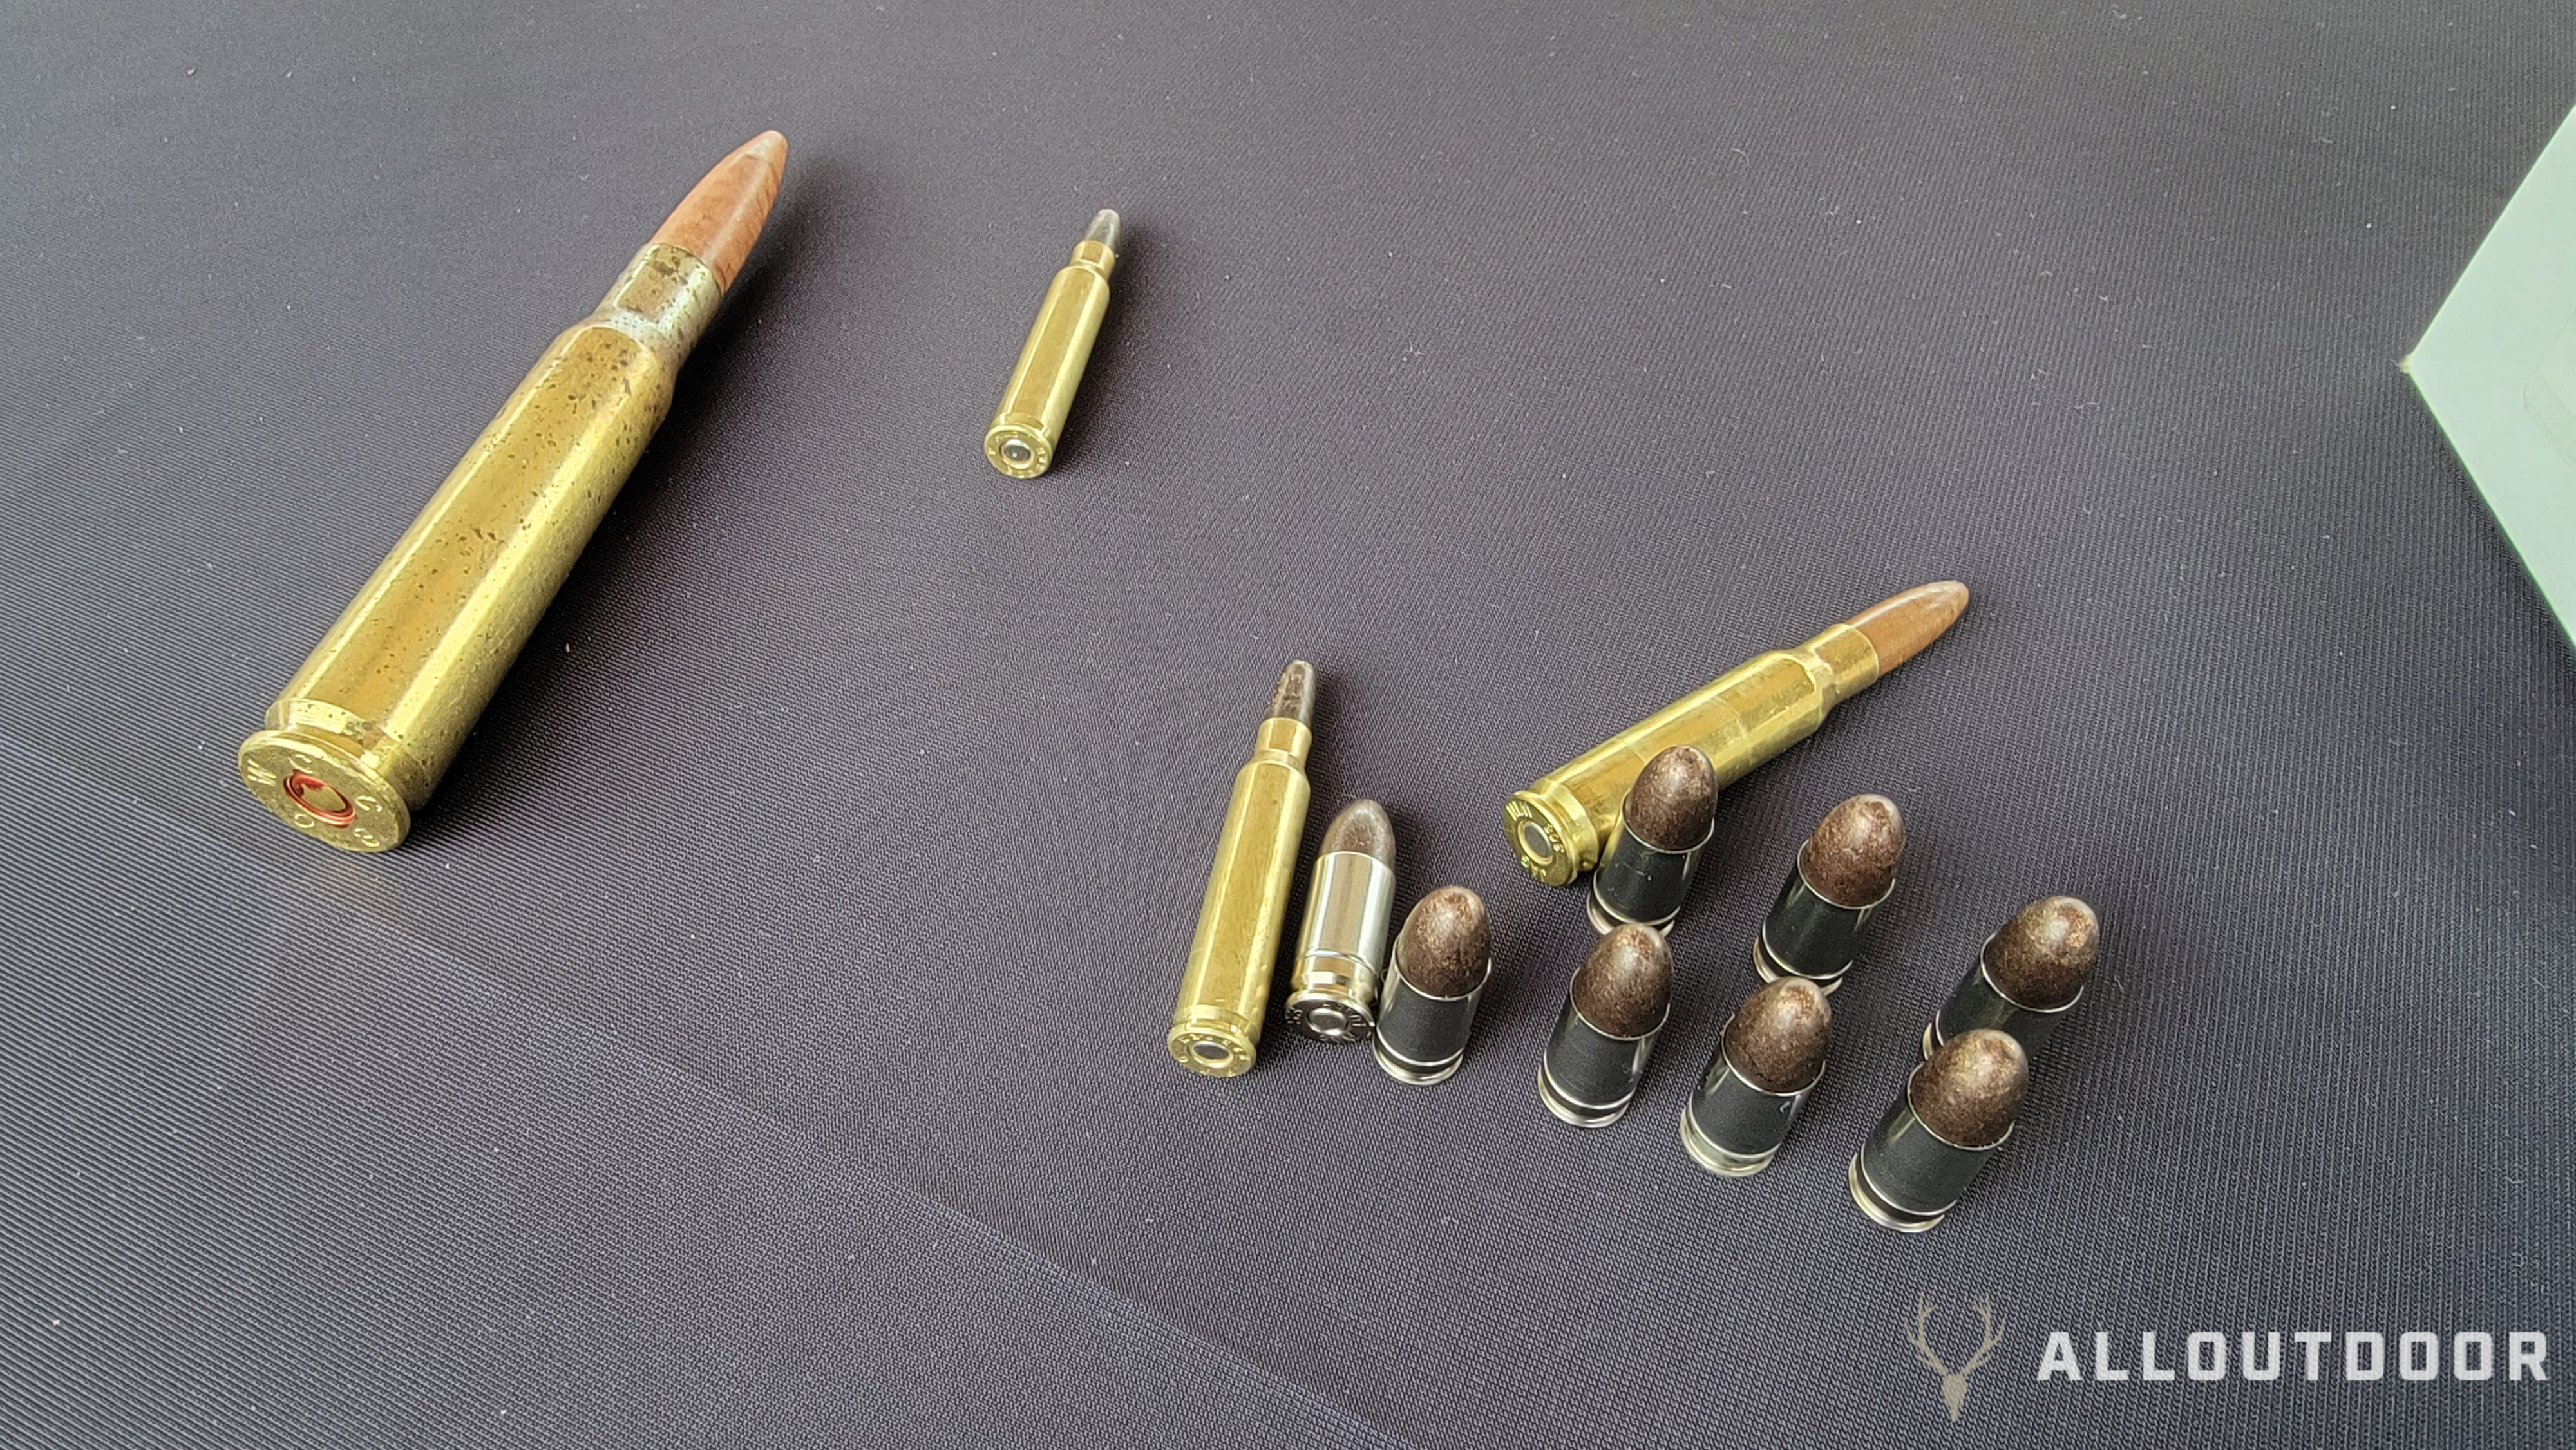 nP Technology 100% Lead-Free Frangible Projectiles & Ammunition